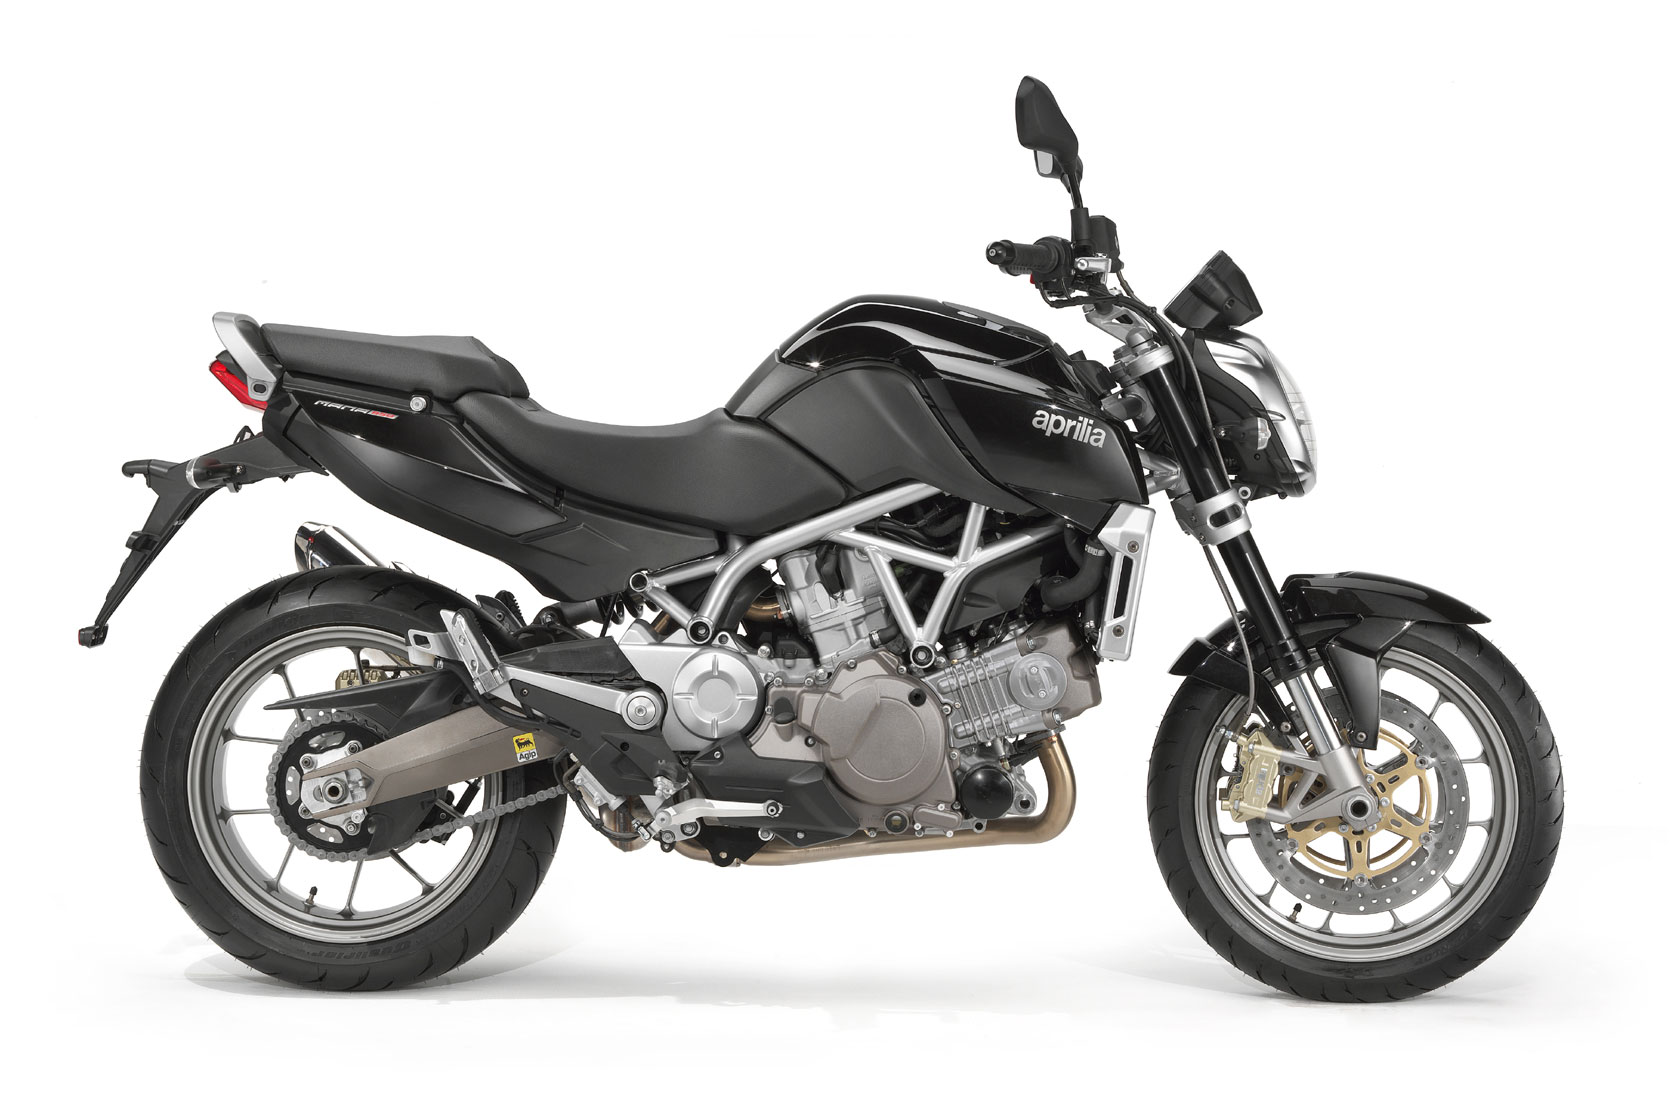 2009 Aprilia Mana 850 Black Edition